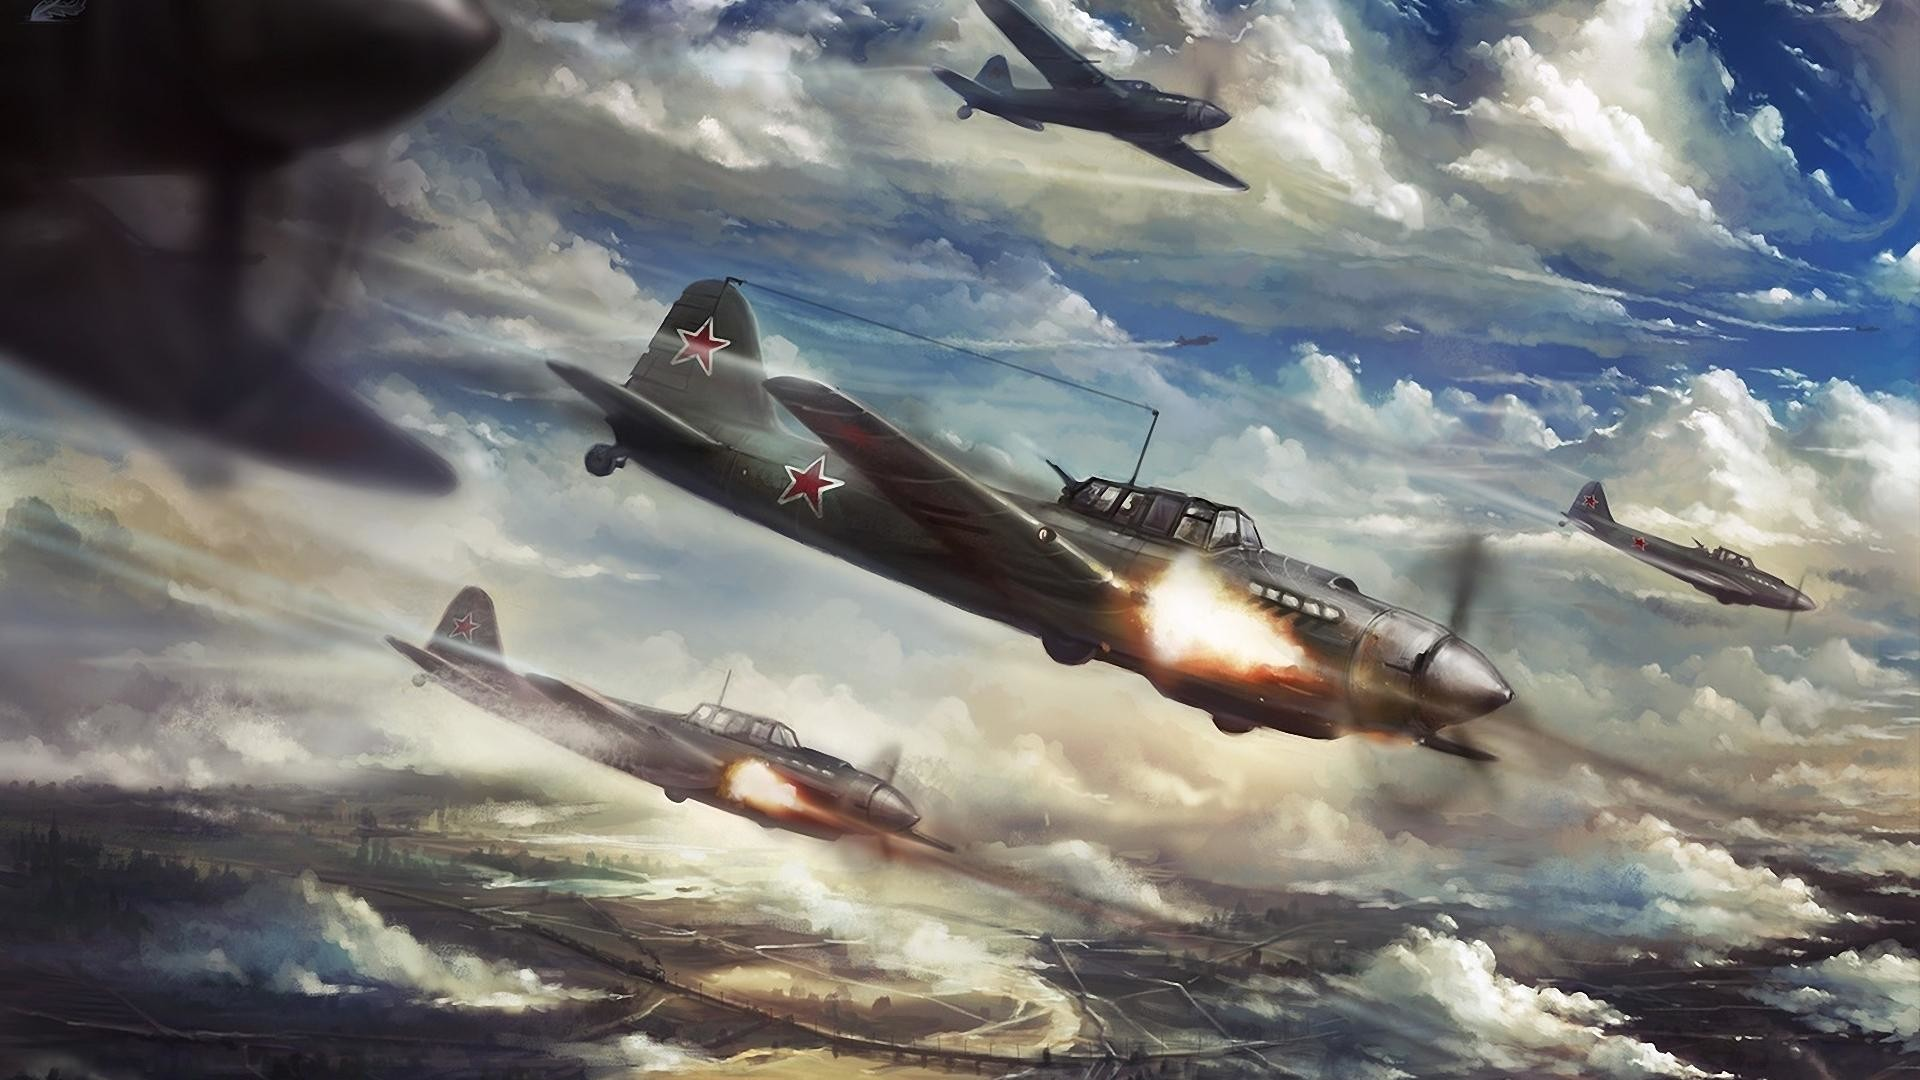 Hd ww2 plane wallpapers 74 images - World war 2 desktop wallpaper ...